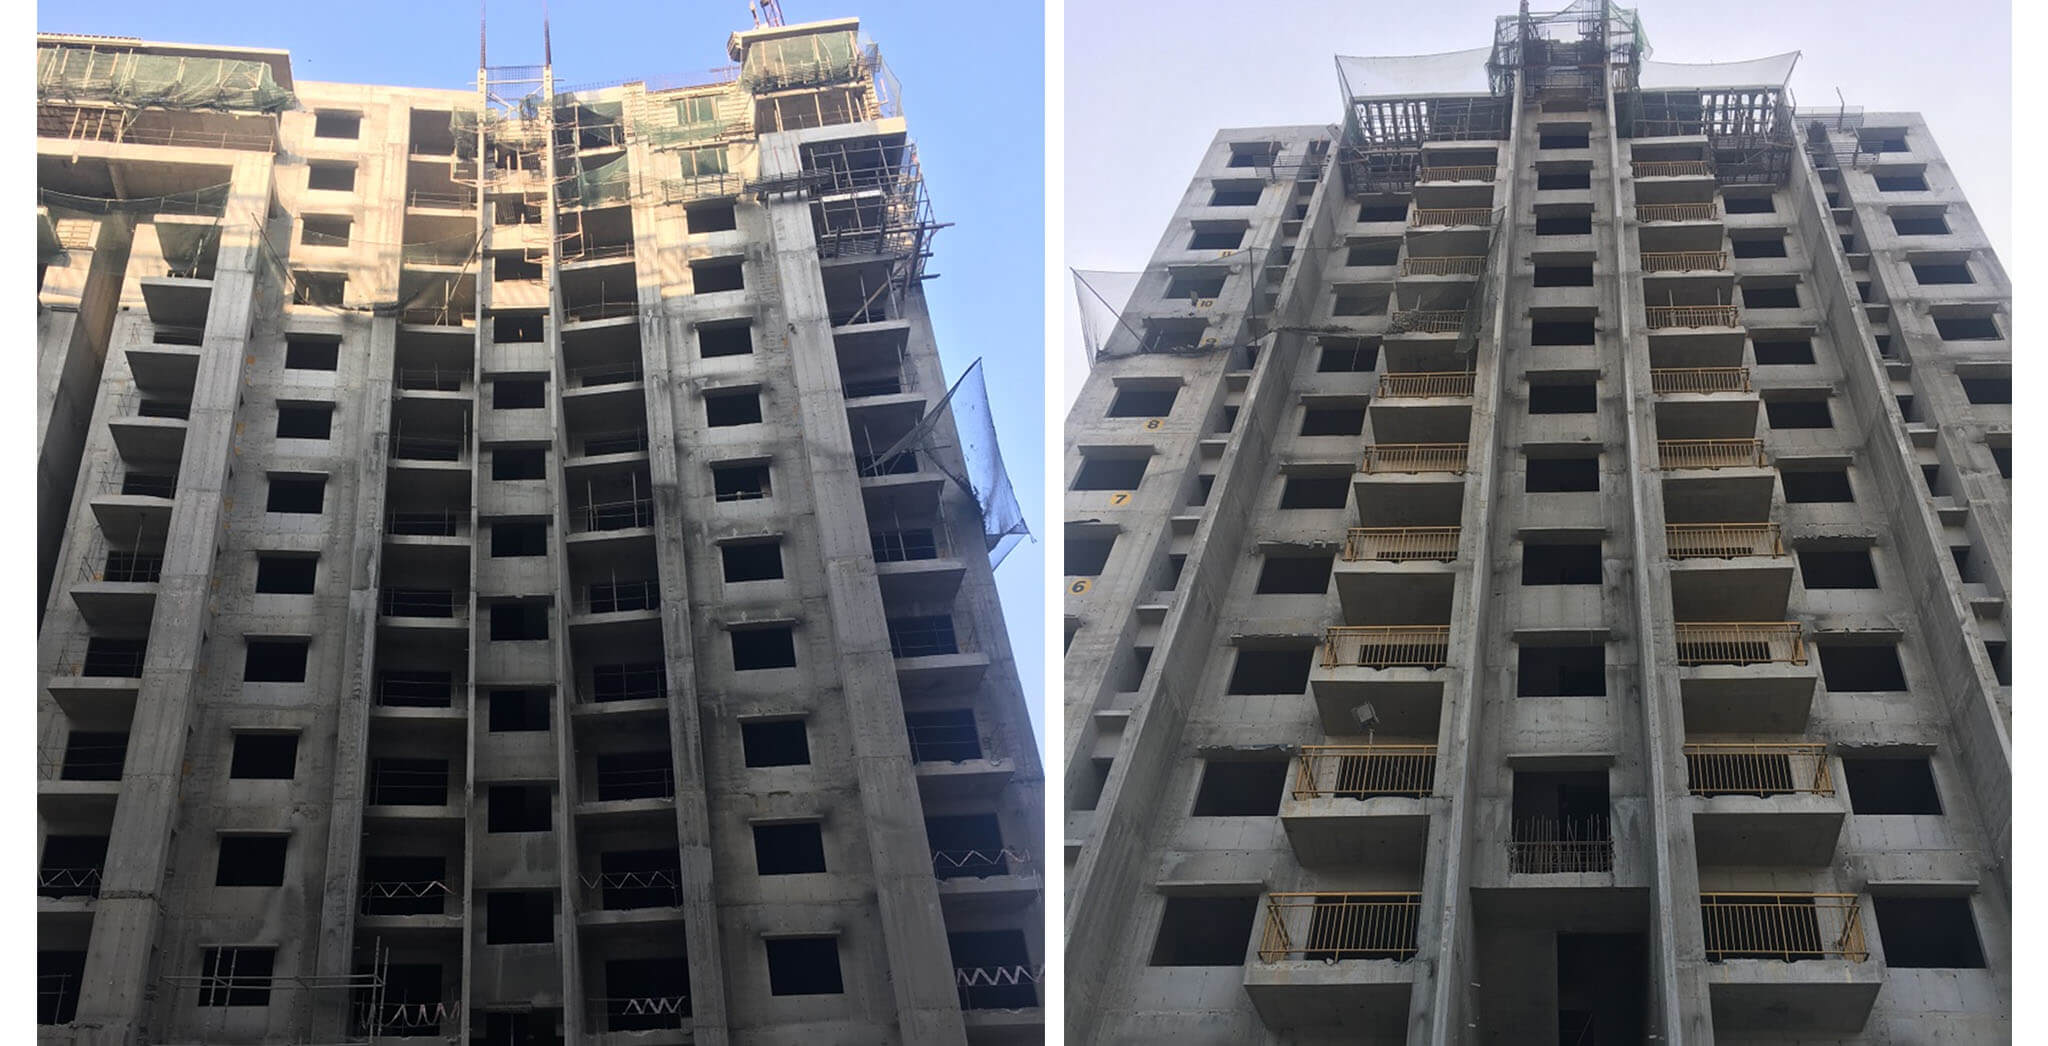 Crimson Block, T wing: 2 BHK and 3 BHK—above terrace work-in-progress